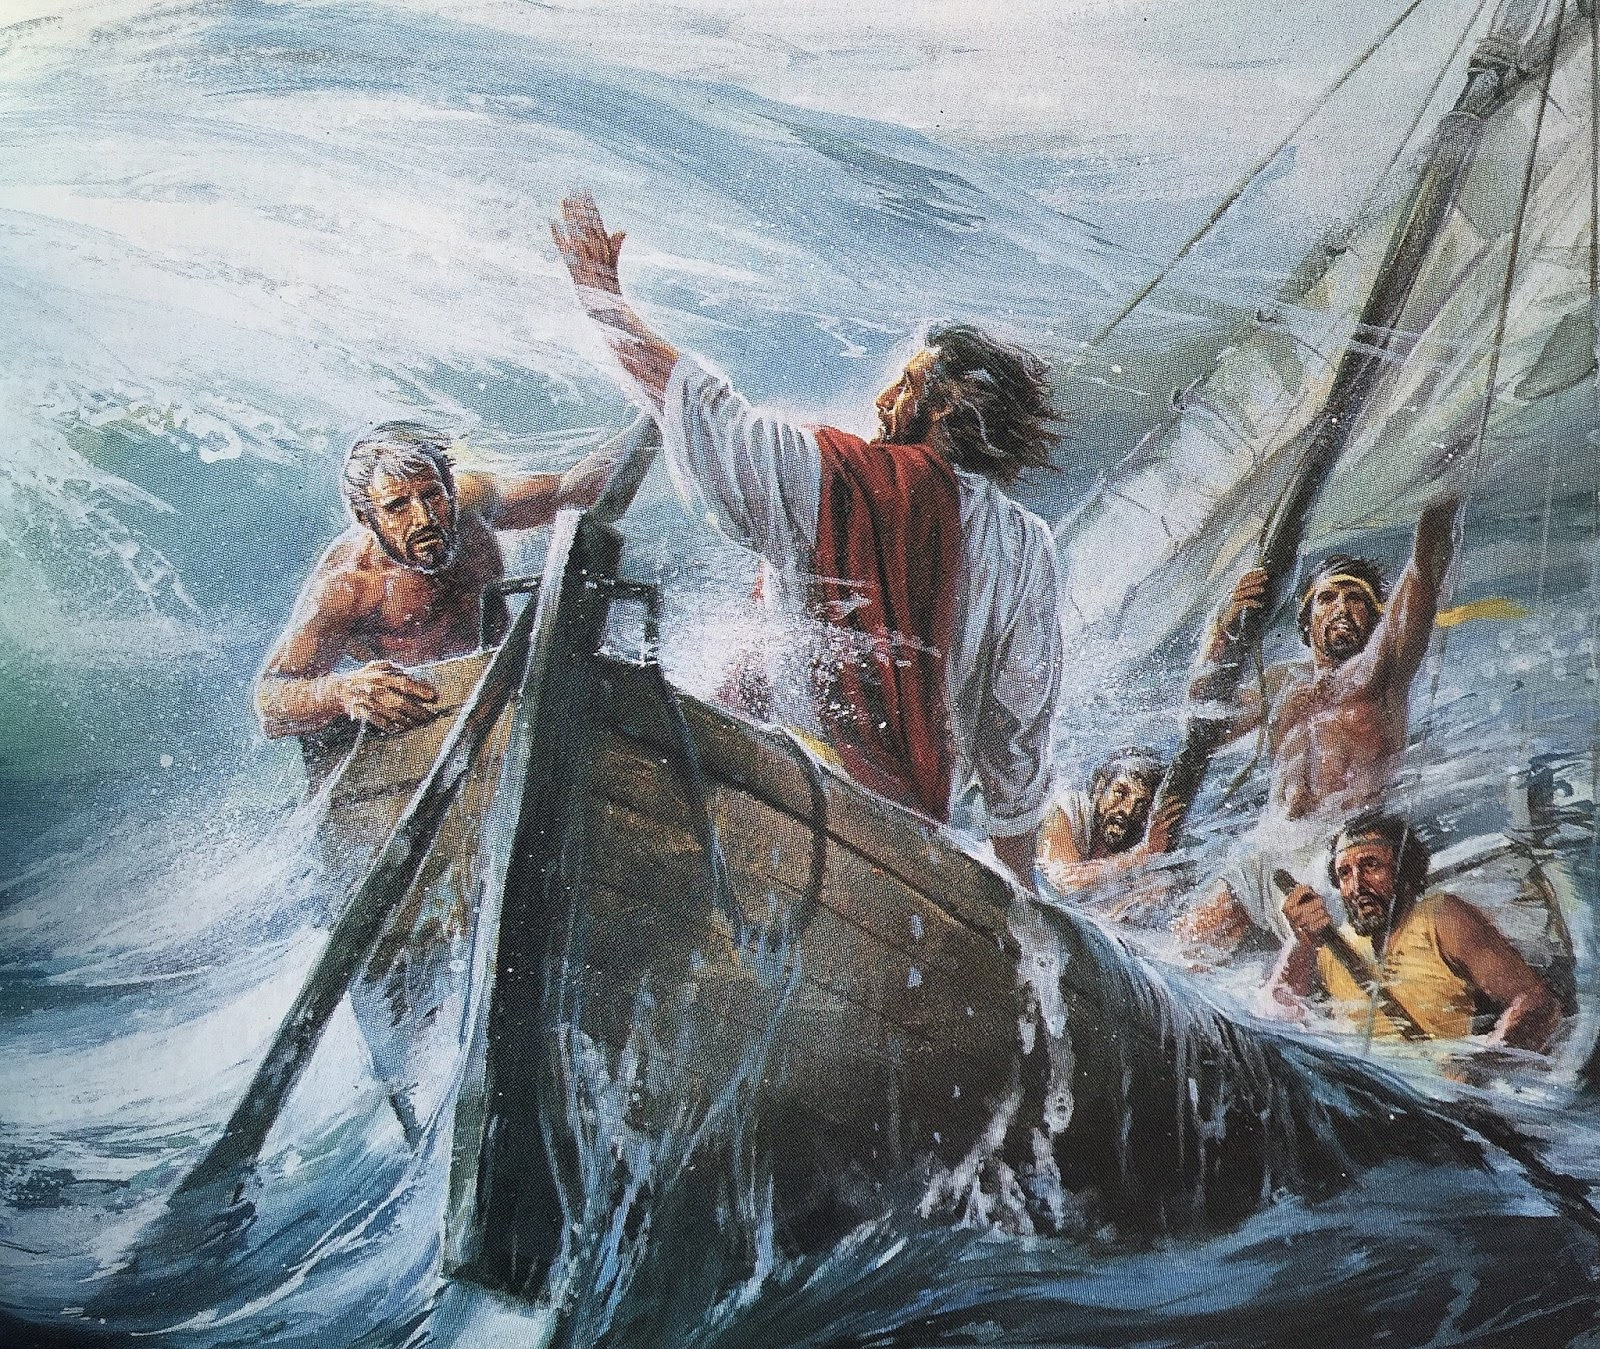 Jonah was able to pay the fare to run from God.